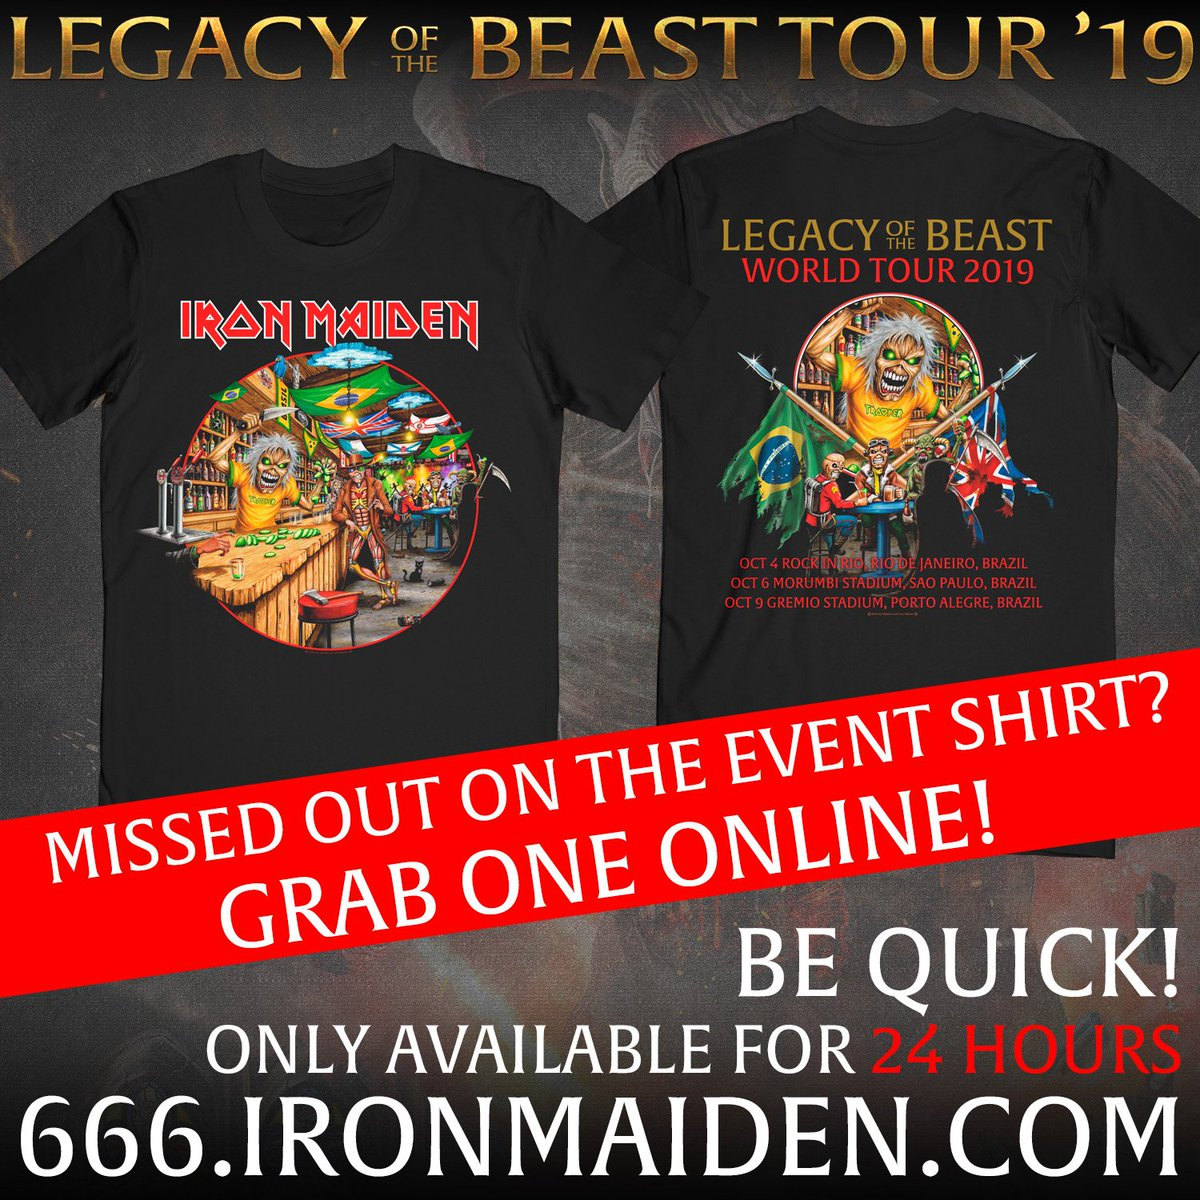 Missed the Brazil shirt? We've got your back. And front. But only for 24 hours... maiden.store/brazil